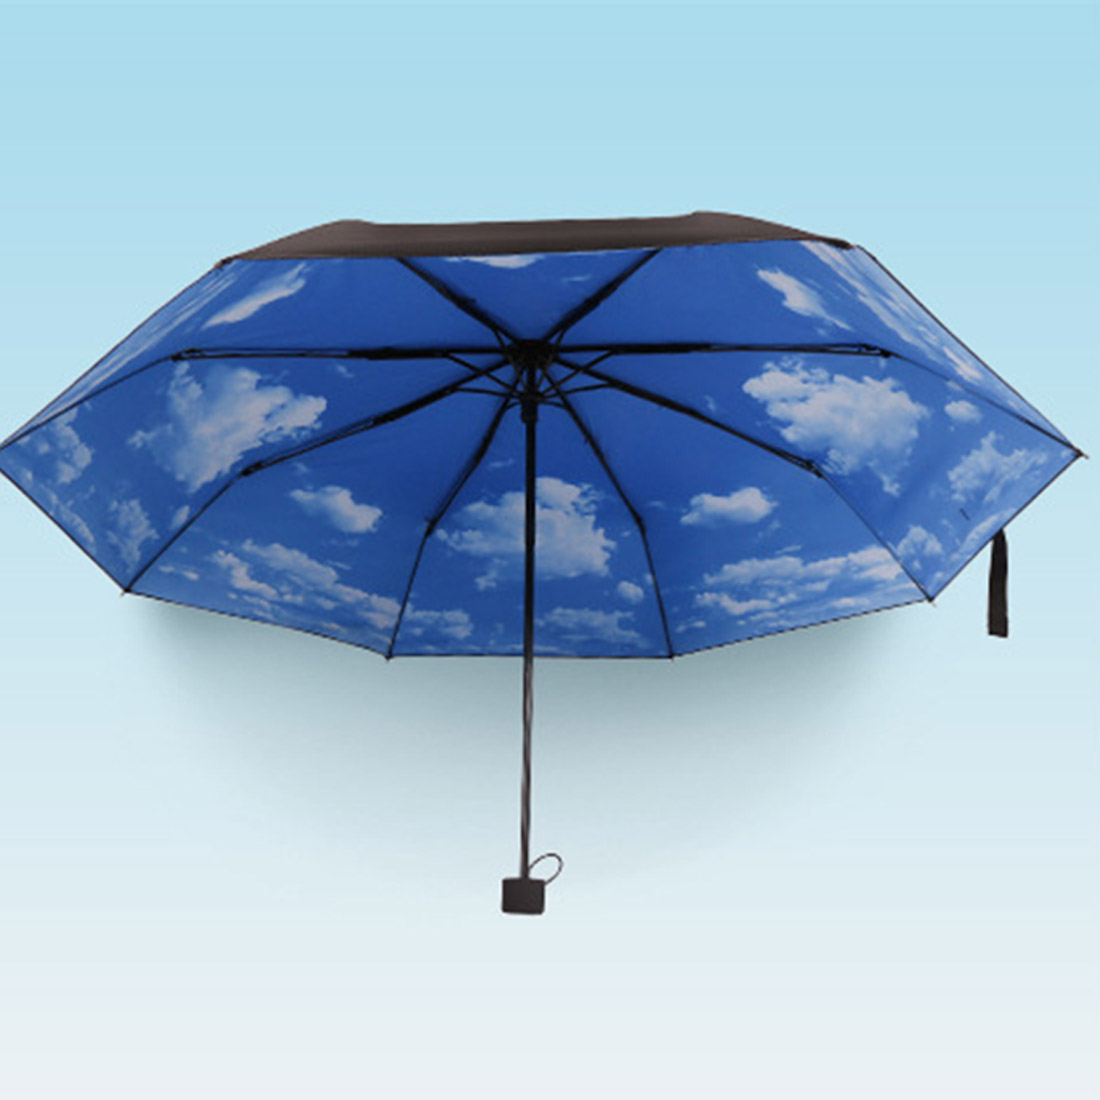 3 Folding Blue Sky Super Anti Uv Umbrellas Sun Protection Parasols